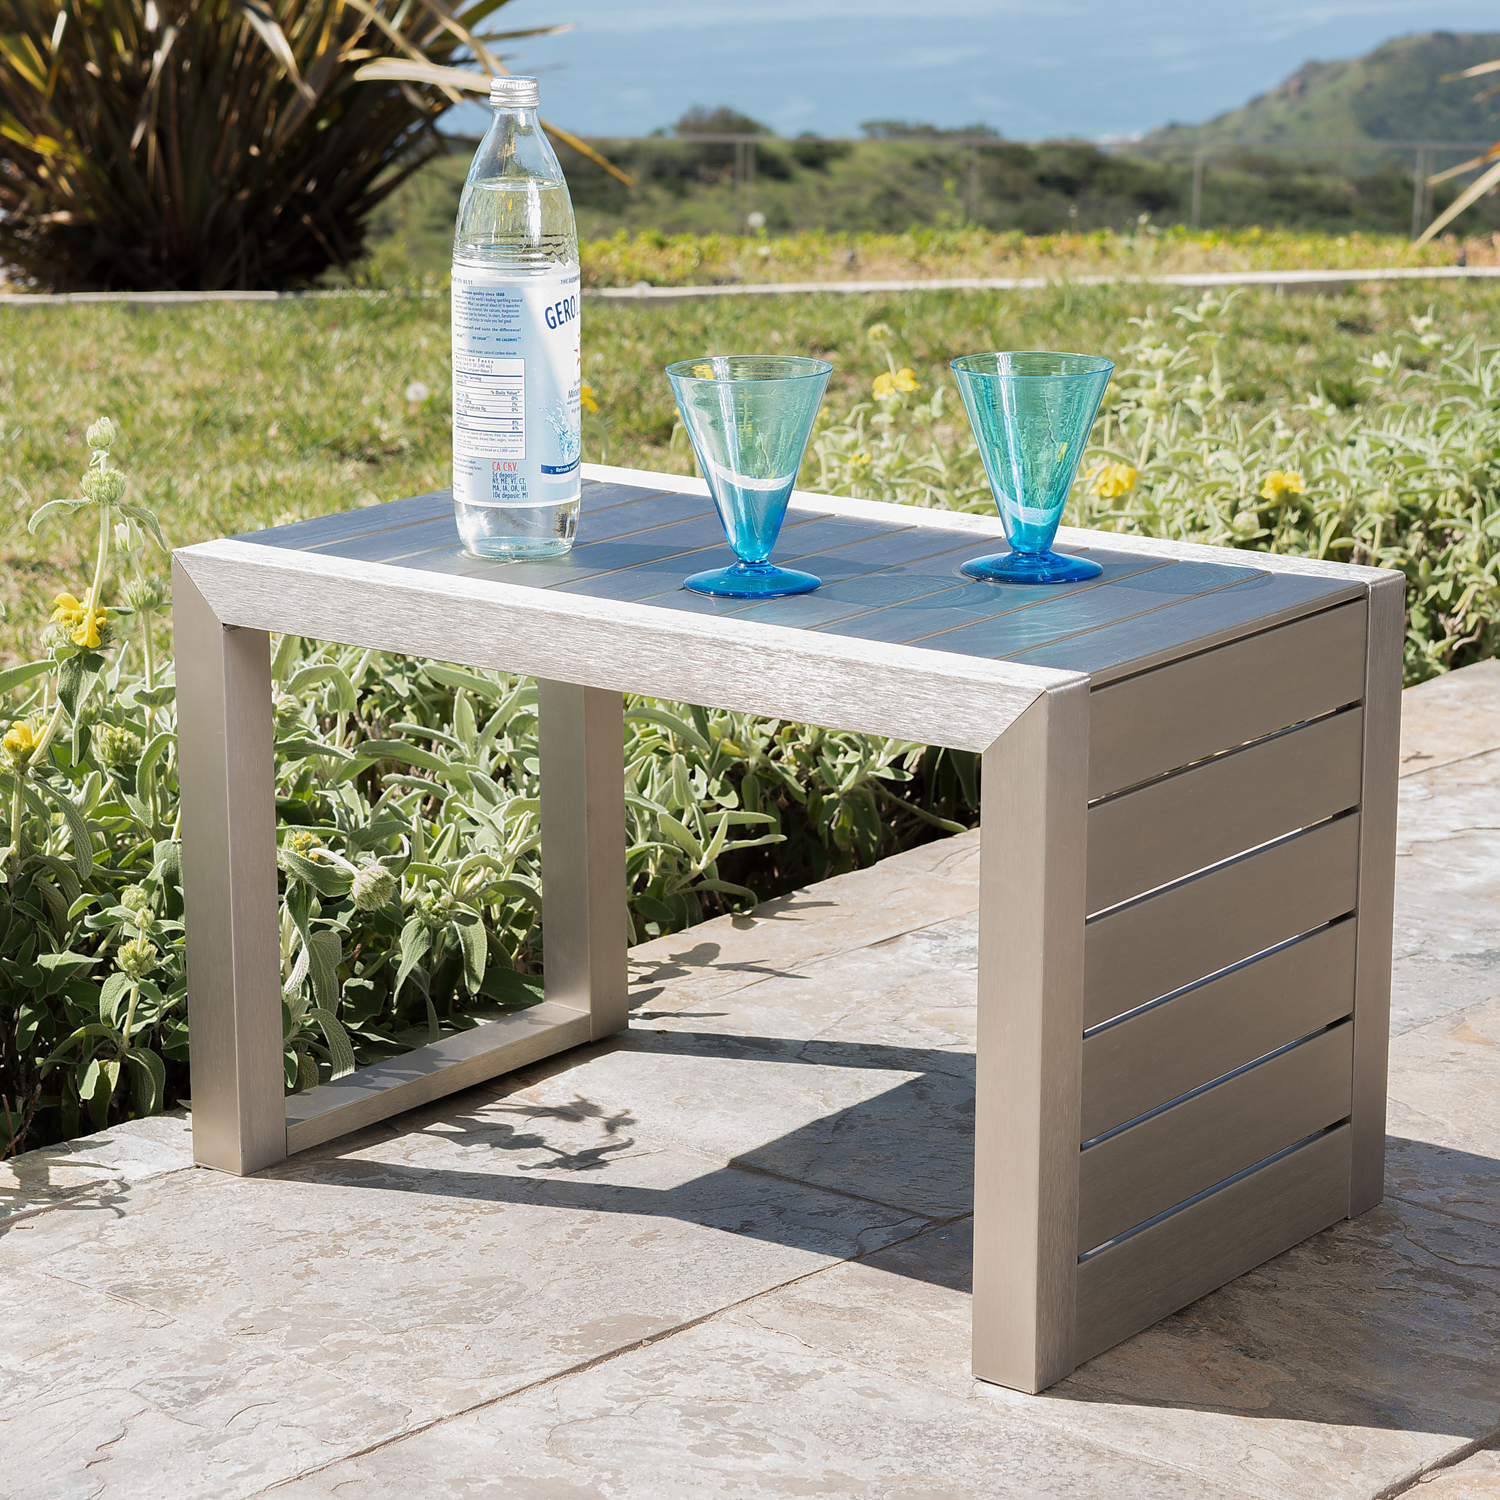 Lorenzo Outdoor Aluminum Club Chairs with Side Table